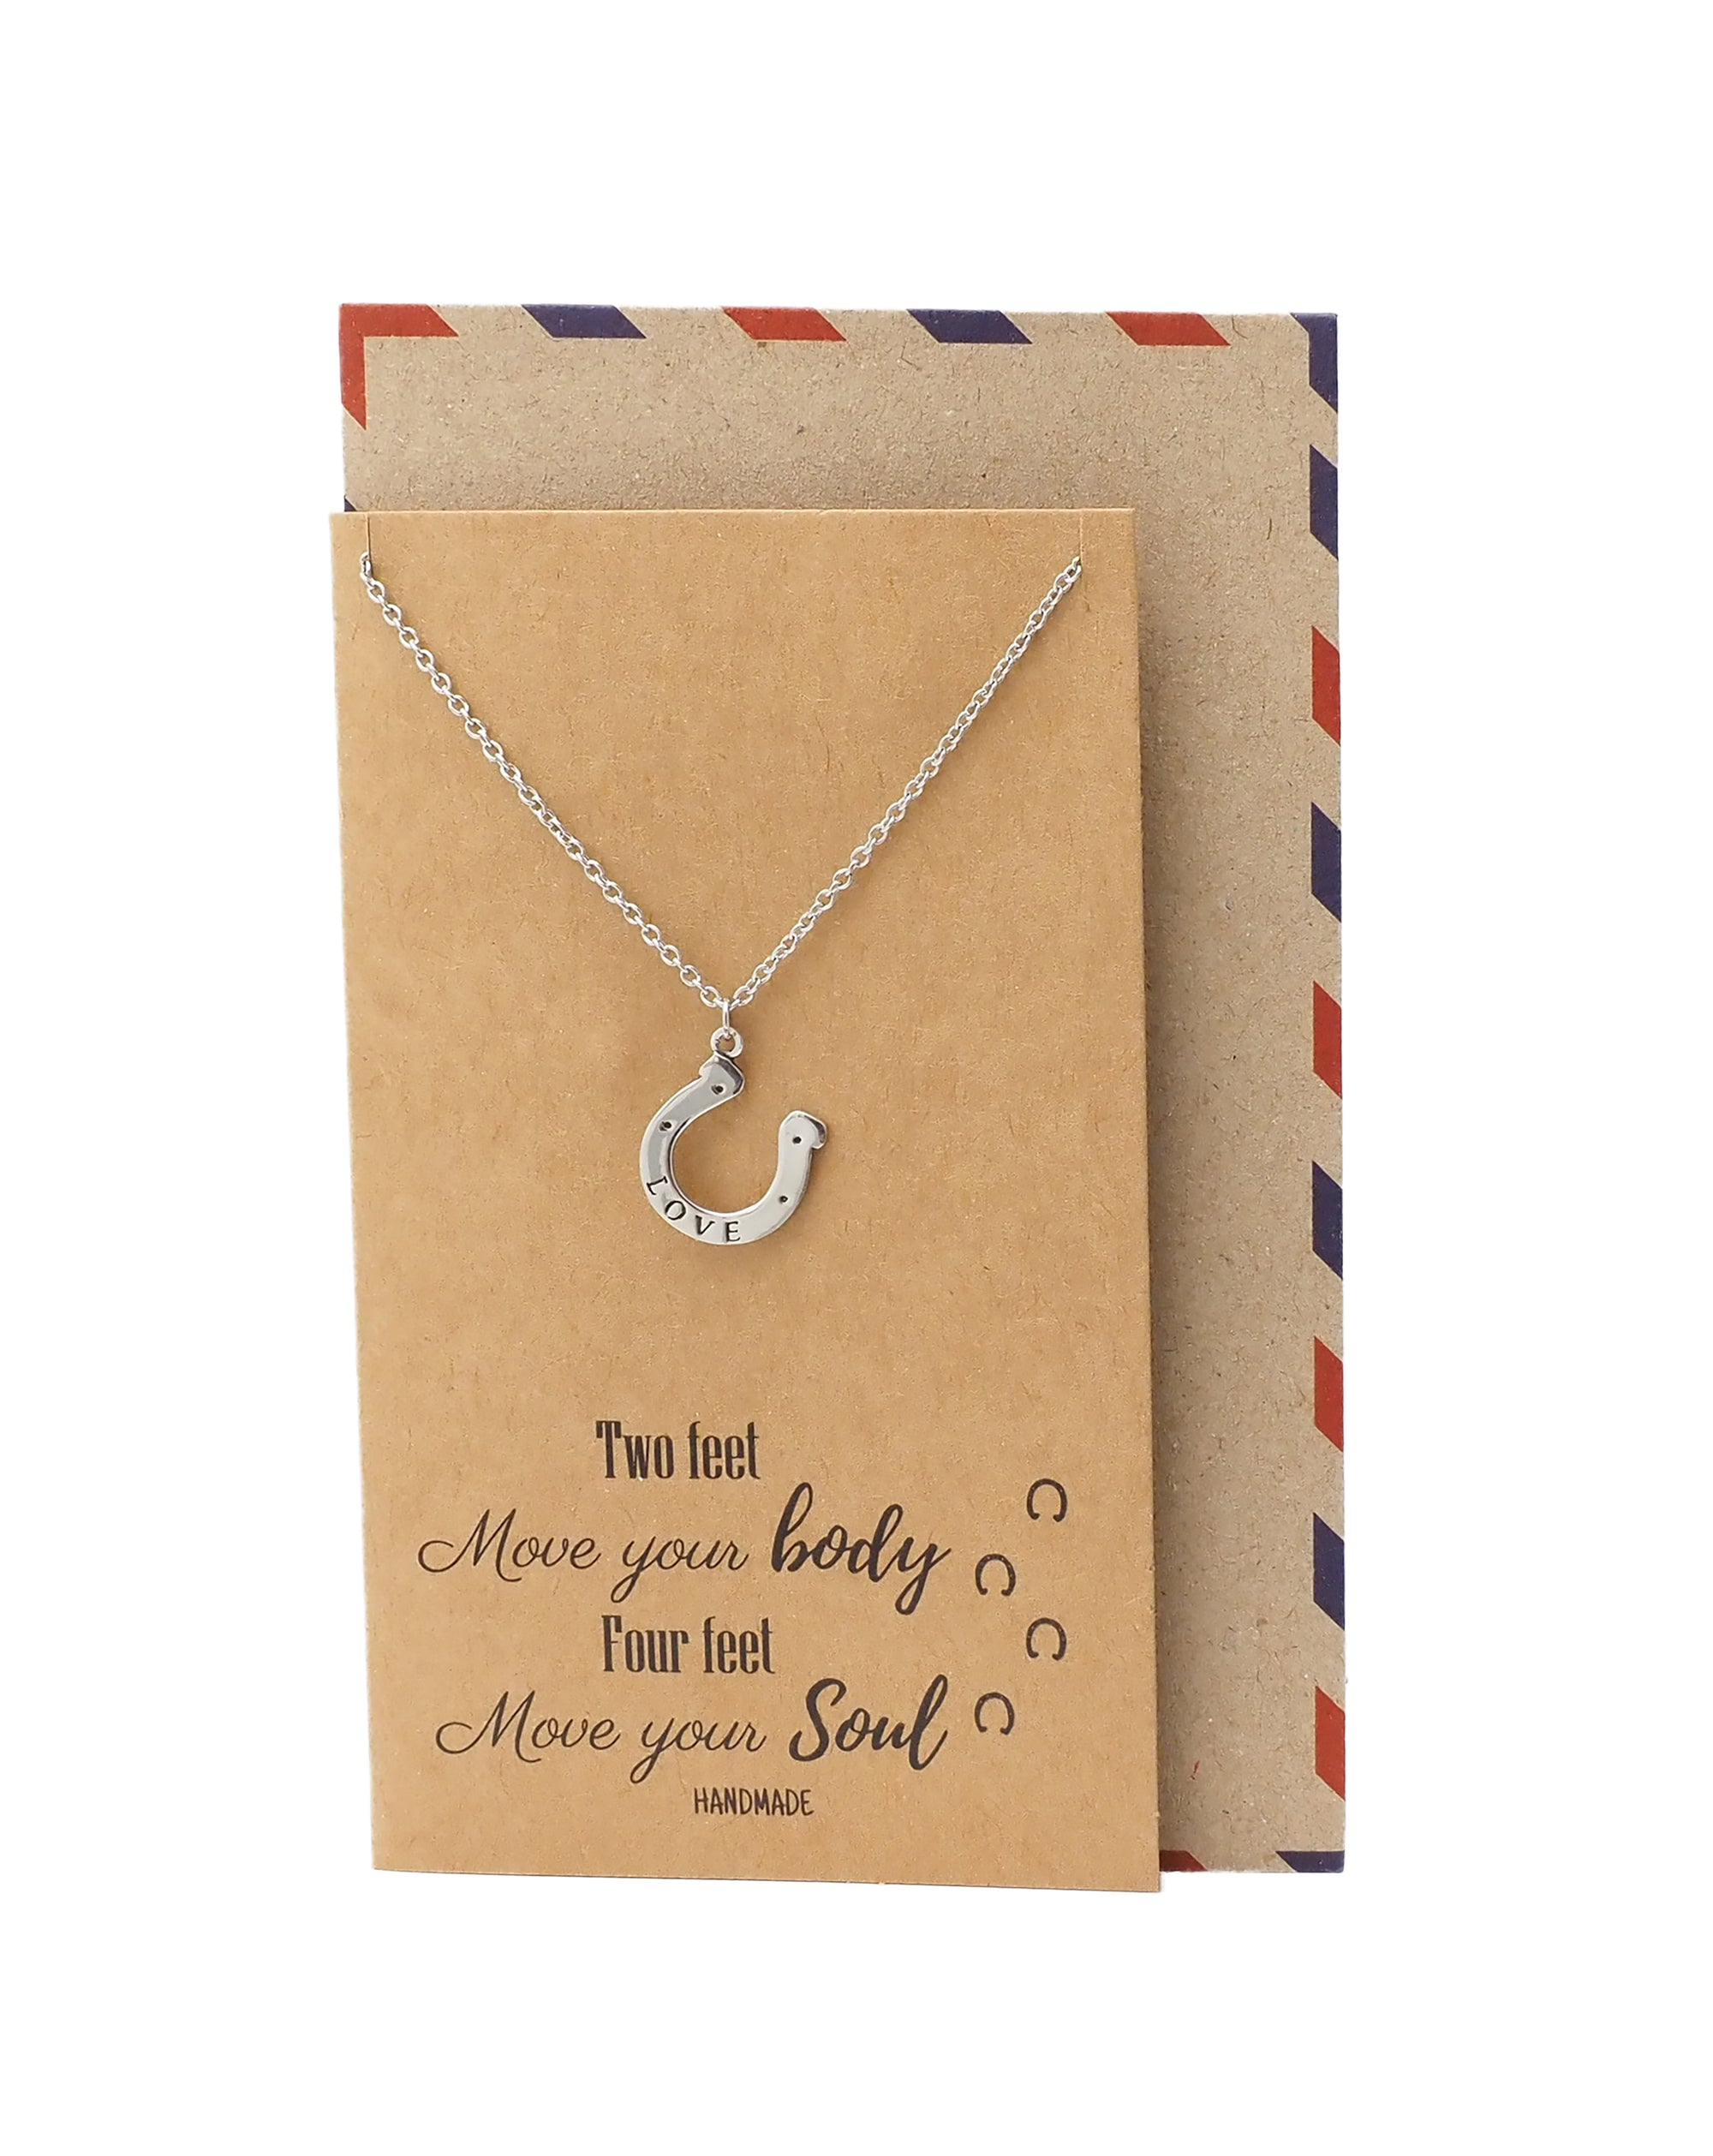 Danielle Horseshoe Necklace, Good Luck Gifts for Horse Lovers